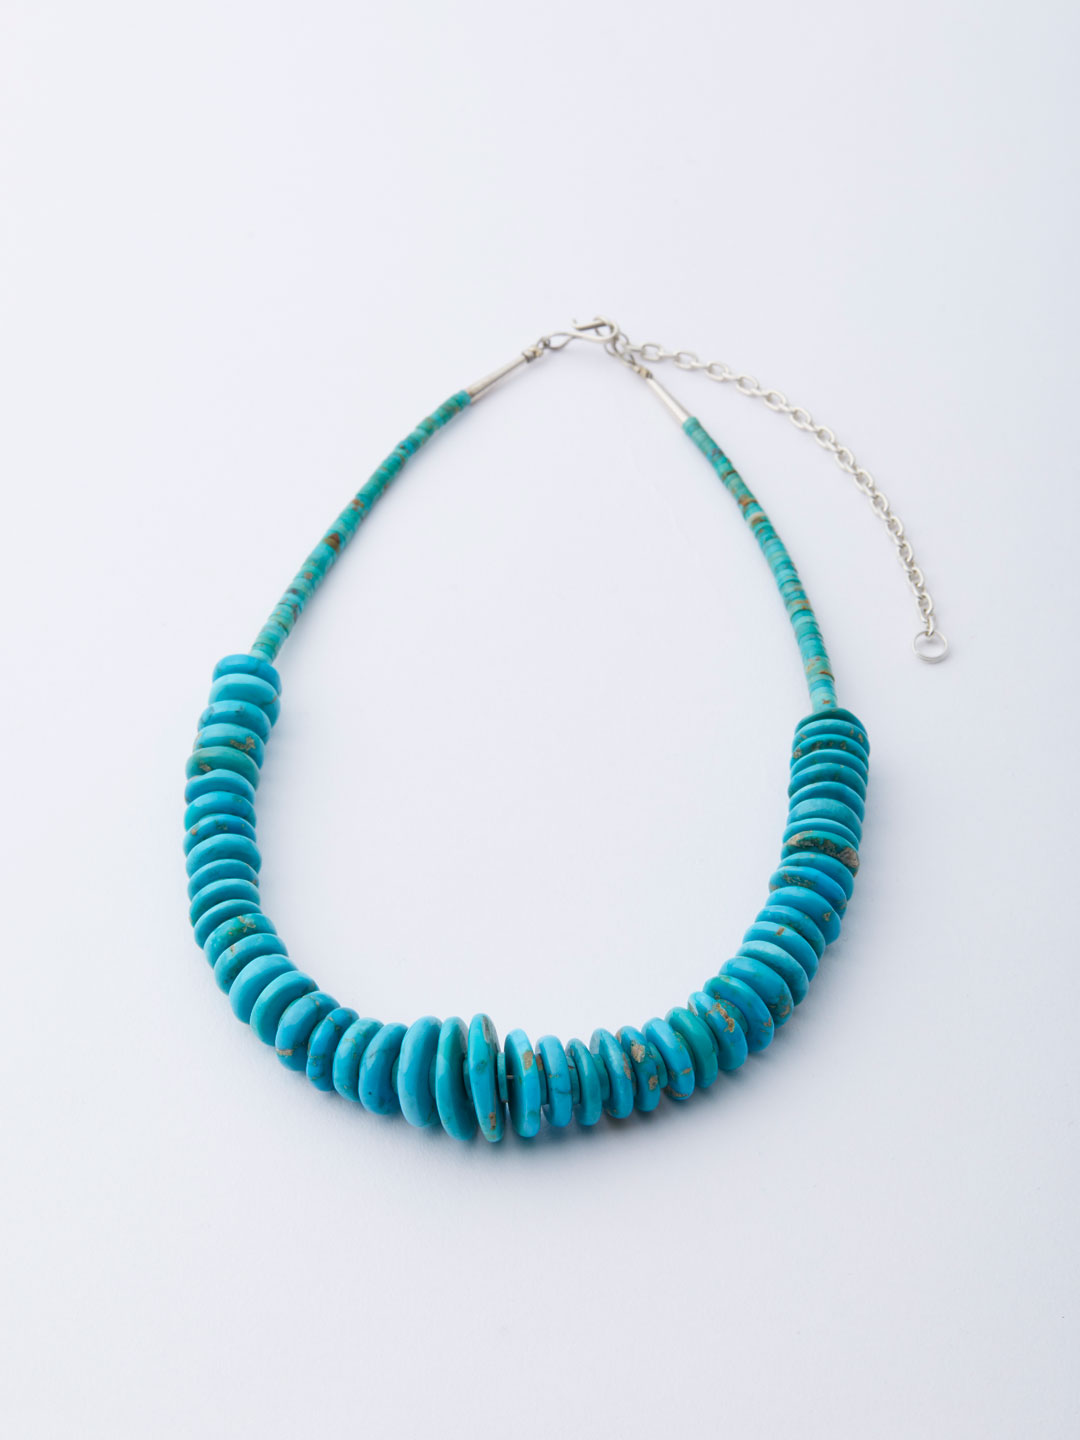 Sleeping Beauty Turquoise Necklace - Blue